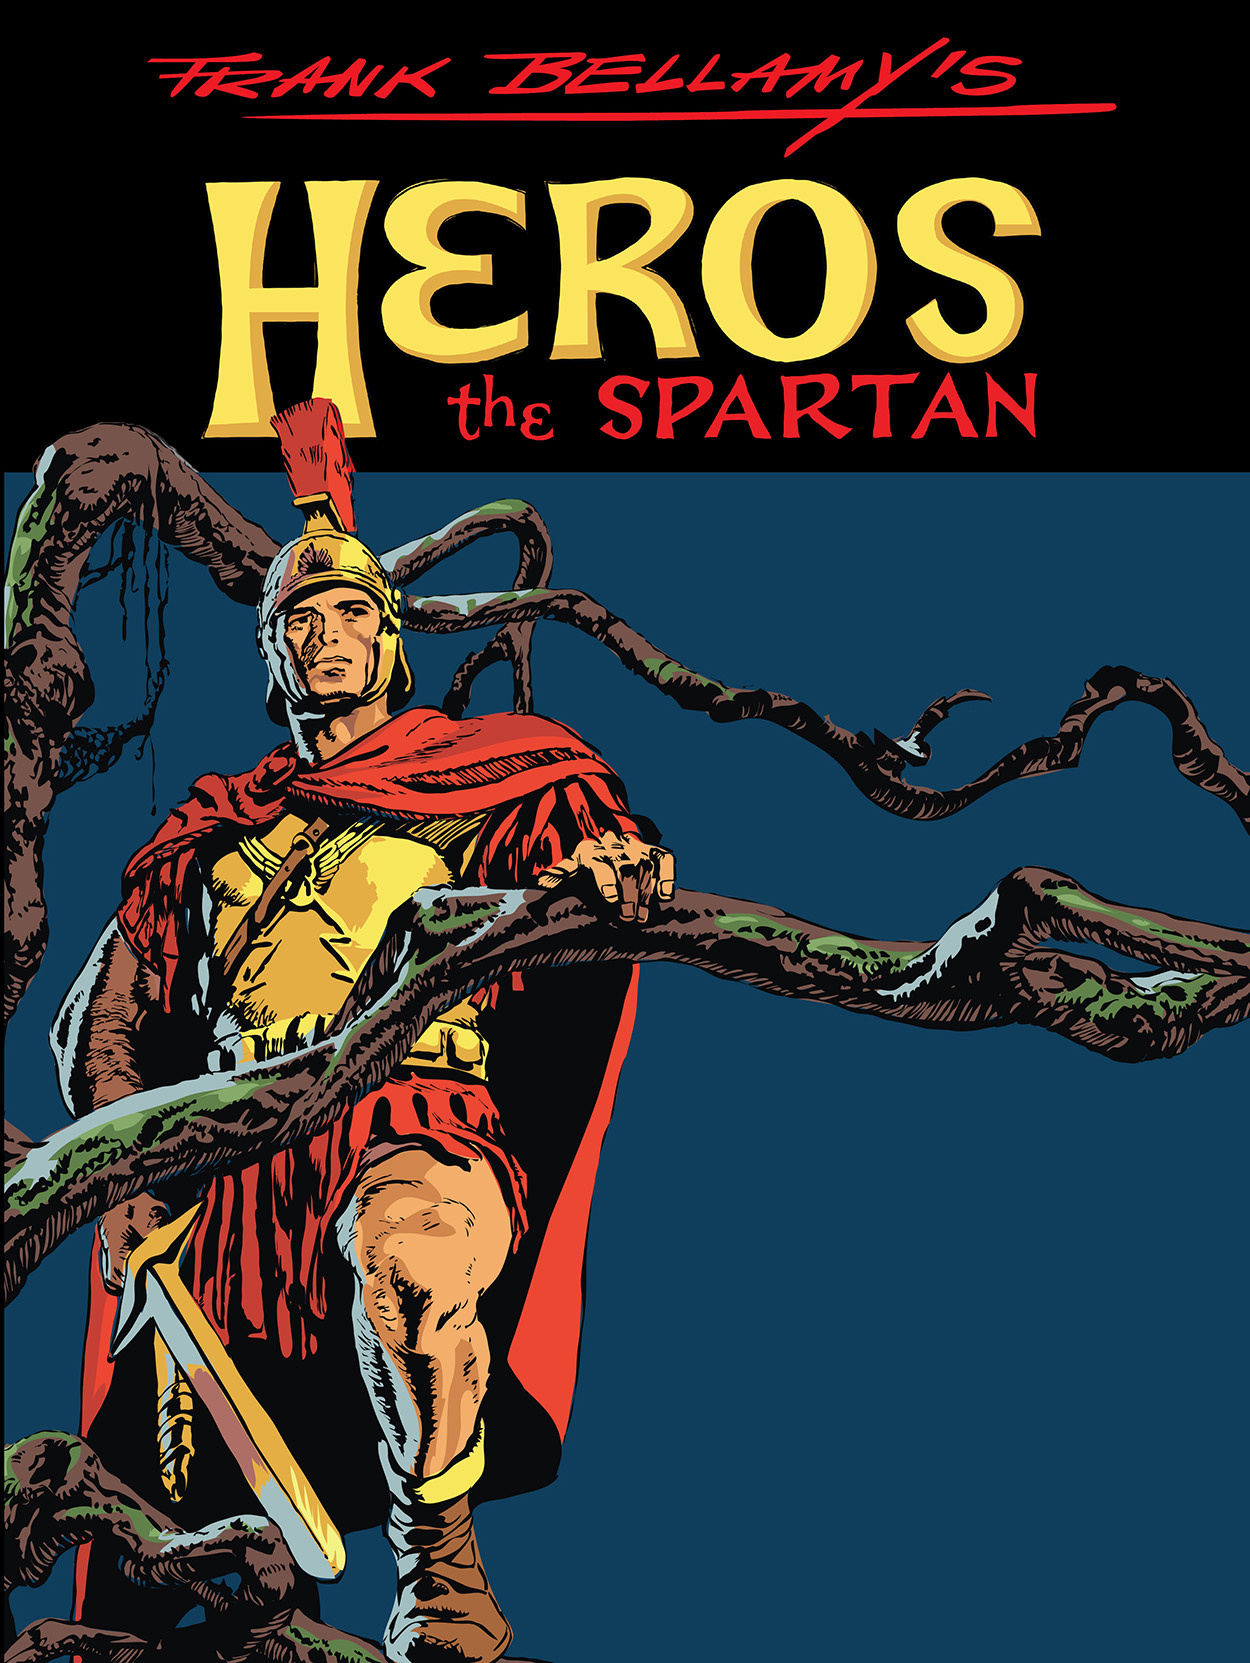 Review | Frank Bellamy's Heros the Spartan